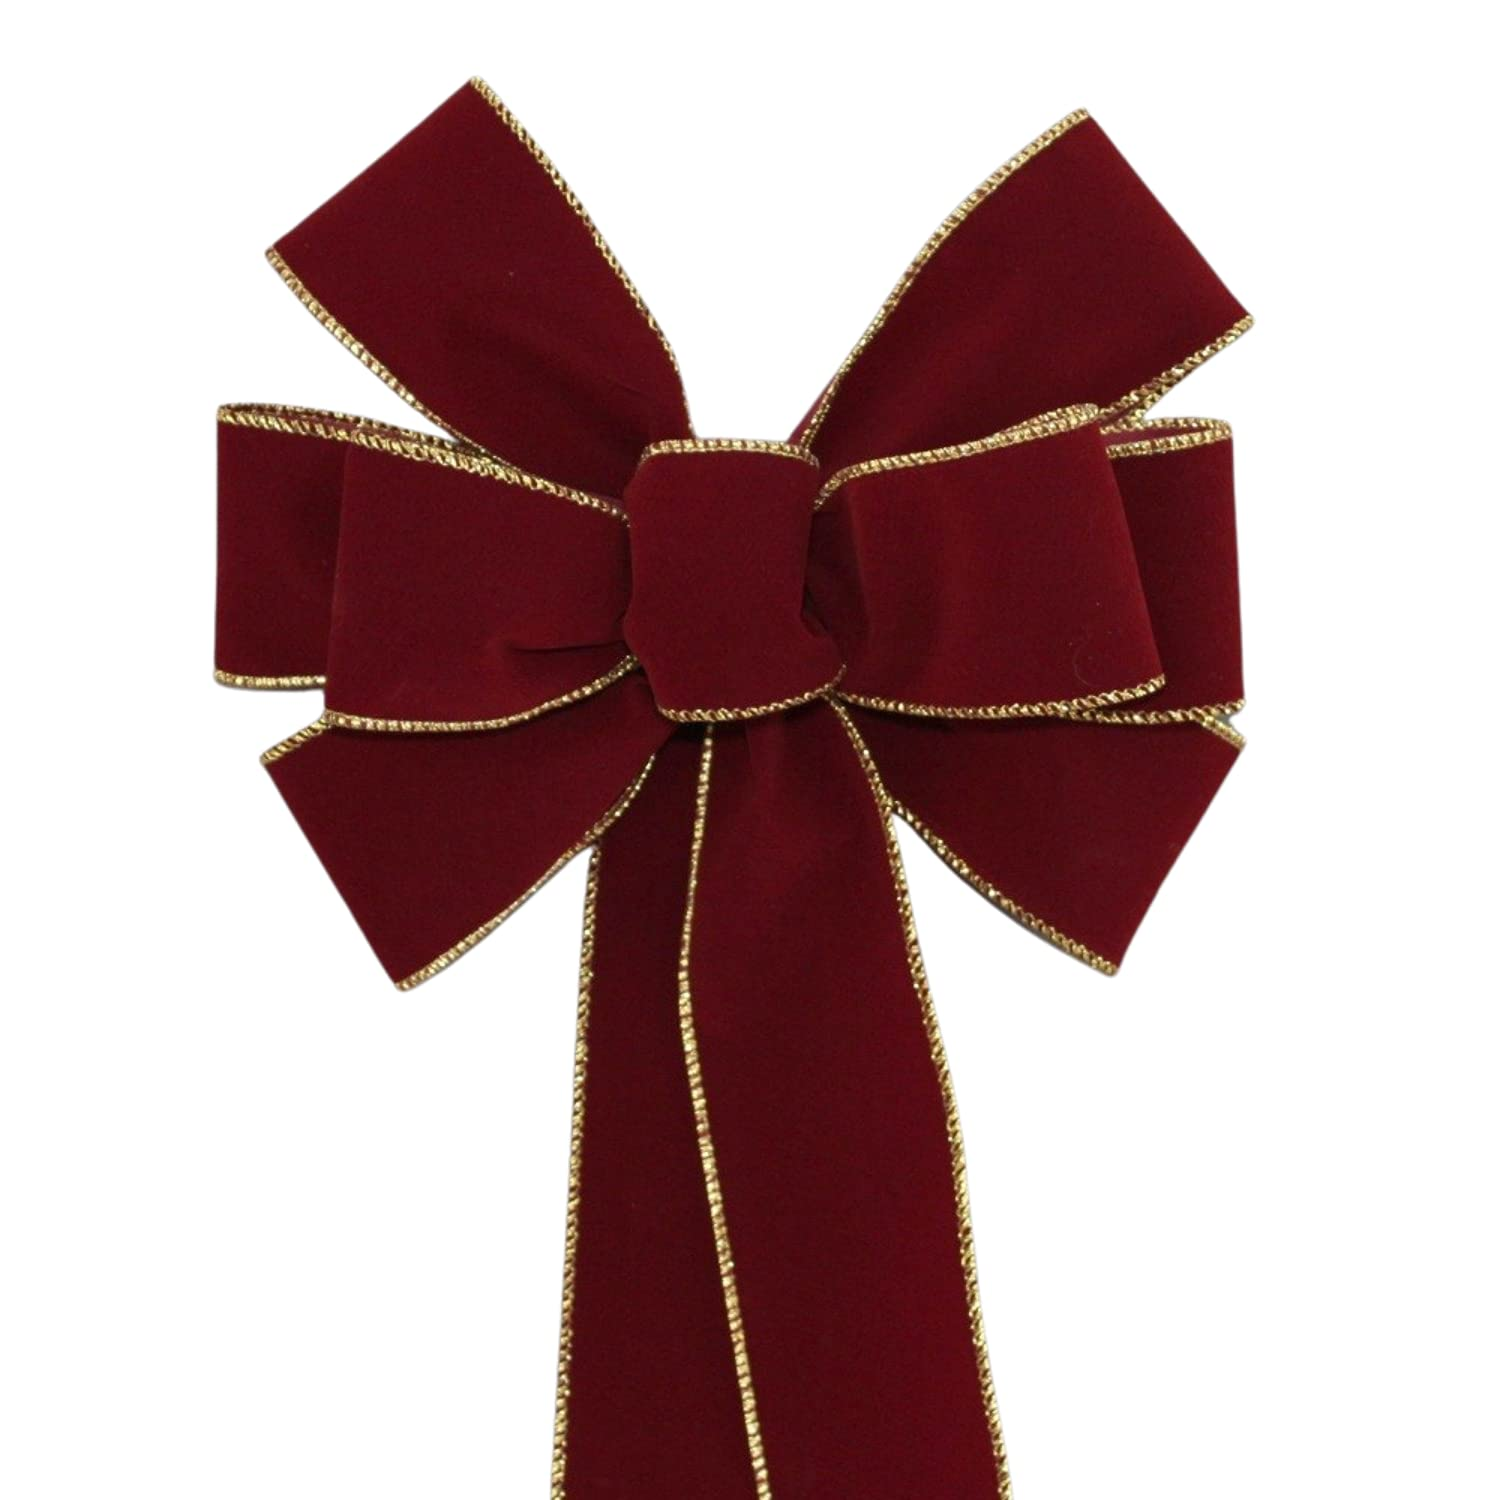 Burgundy Velvet Gold Wire Edge Christmas Color Max 60% OFF a Wreath Bow Genuine Free Shipping with